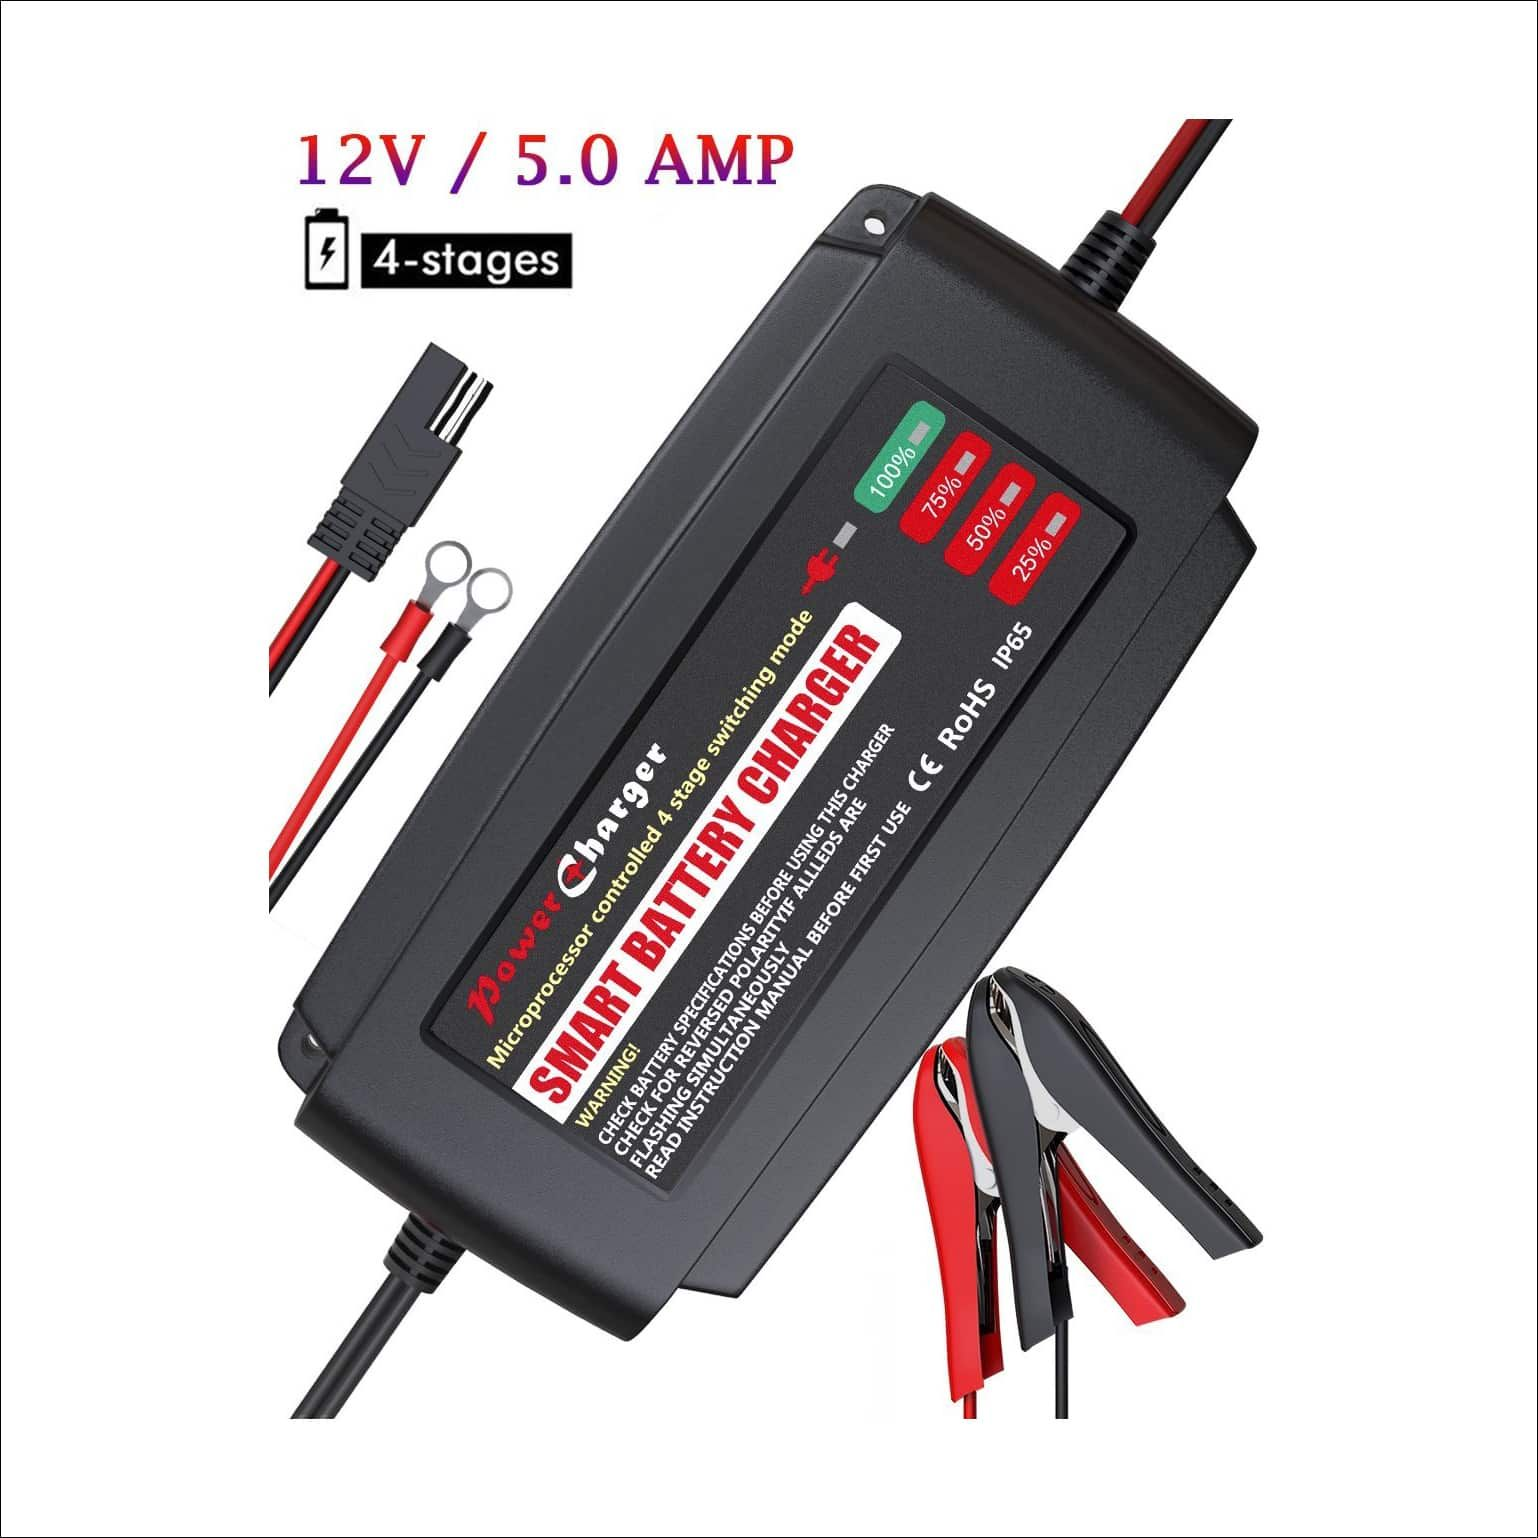 BMK 12V 5Amp Fully Automatic Battery Charger | Top 10 Best